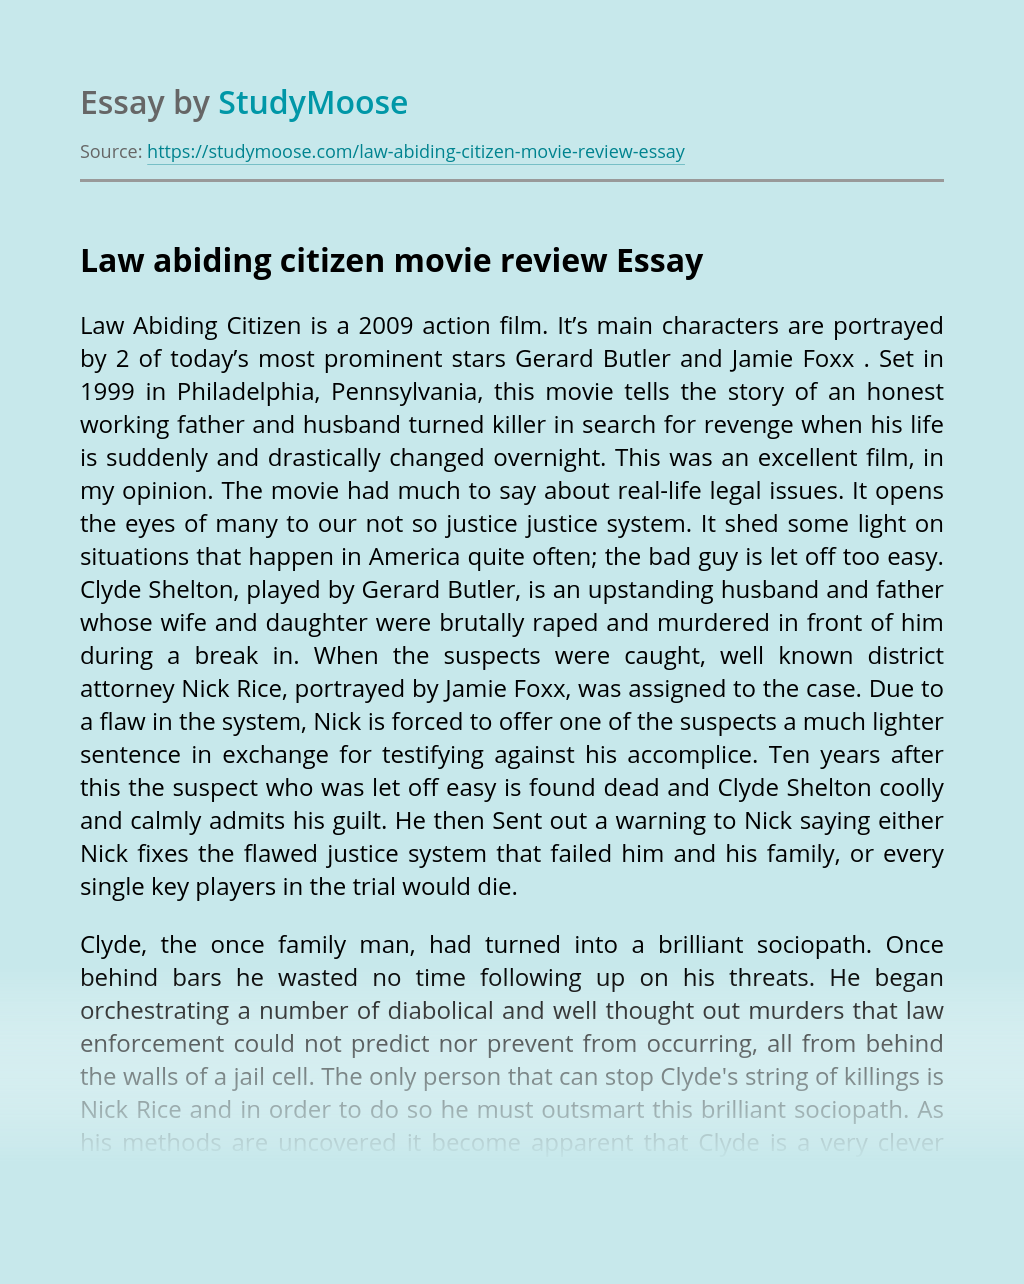 Law abiding citizen movie review